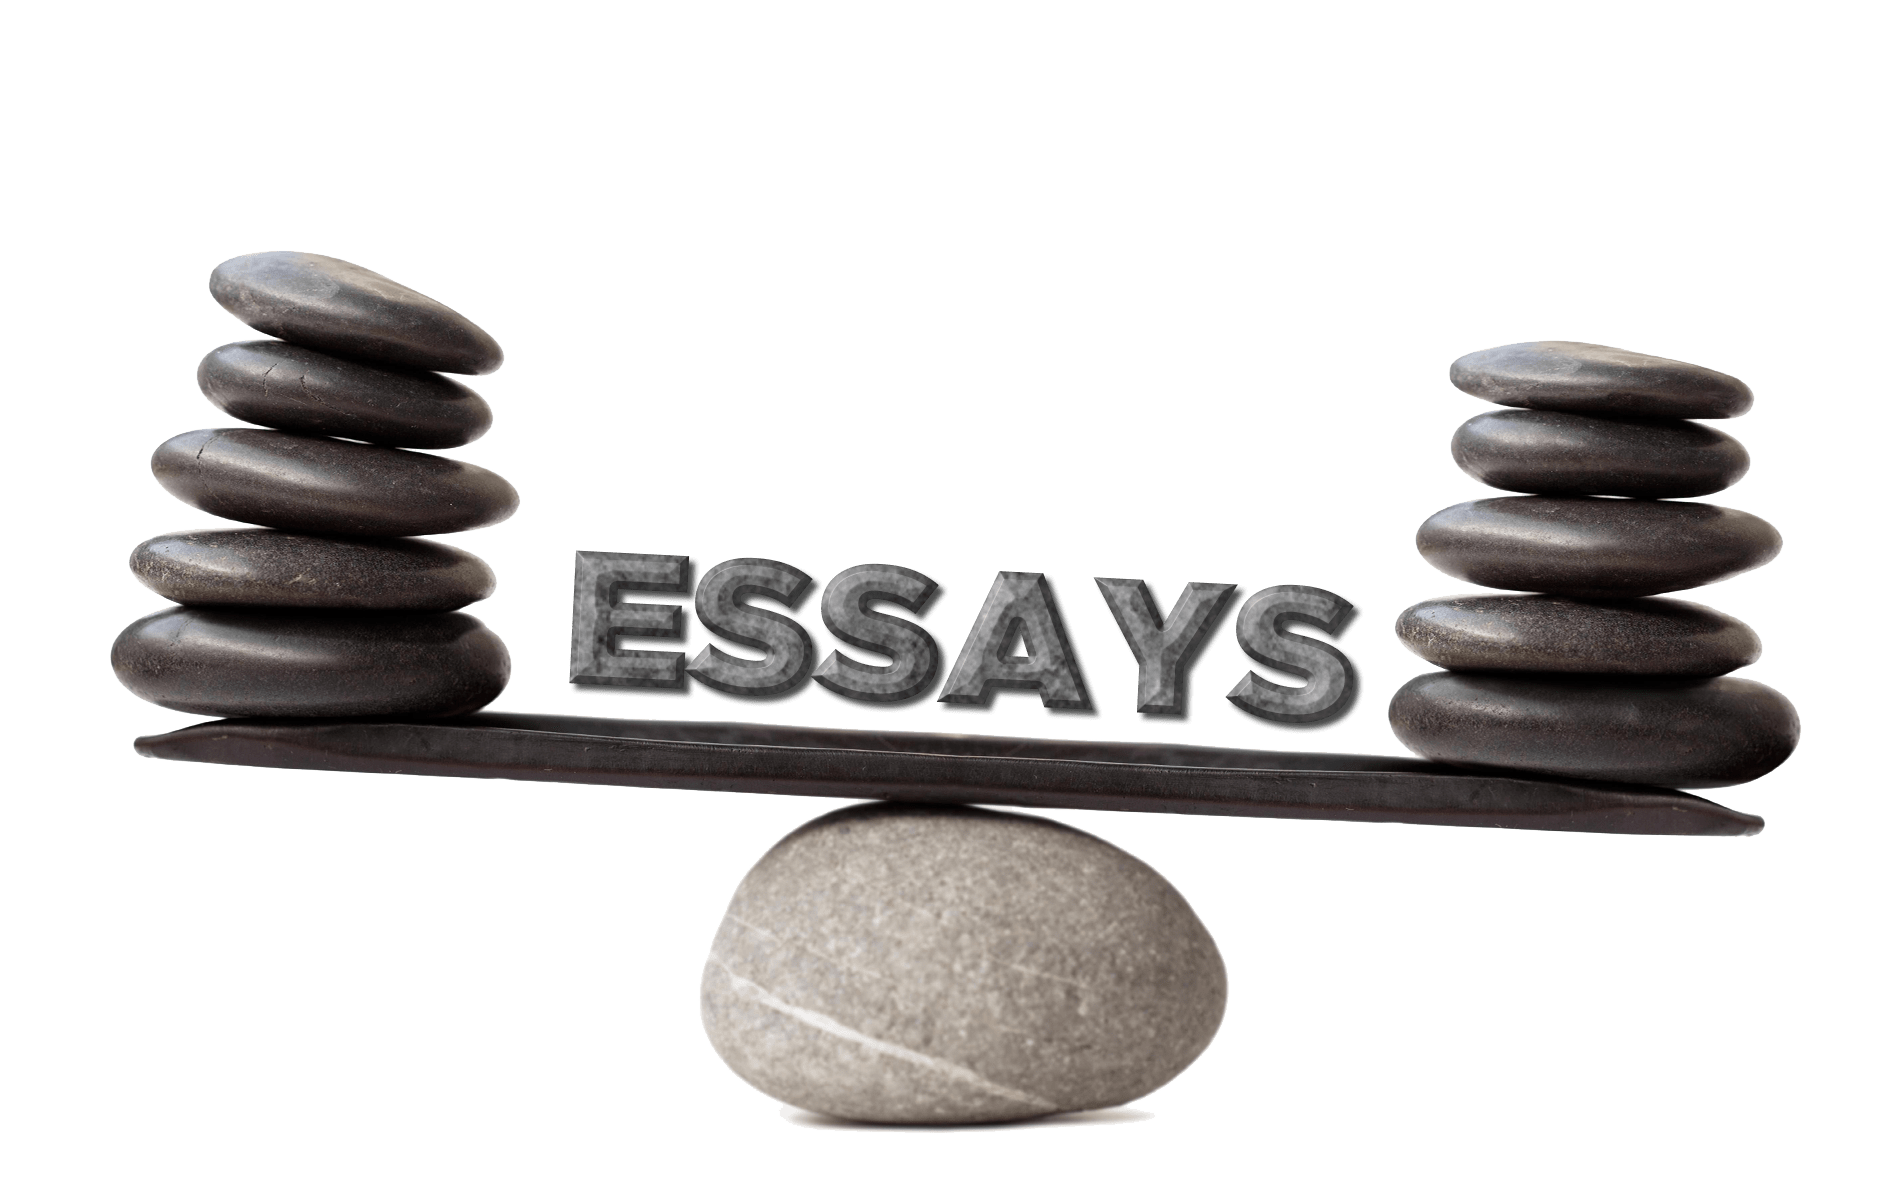 In the wake of COVID, college essays are sure to gain the spotlight as a key element together with GPA to get into the college of your choice. Knowing the secrets to creating great essays can set you apart.